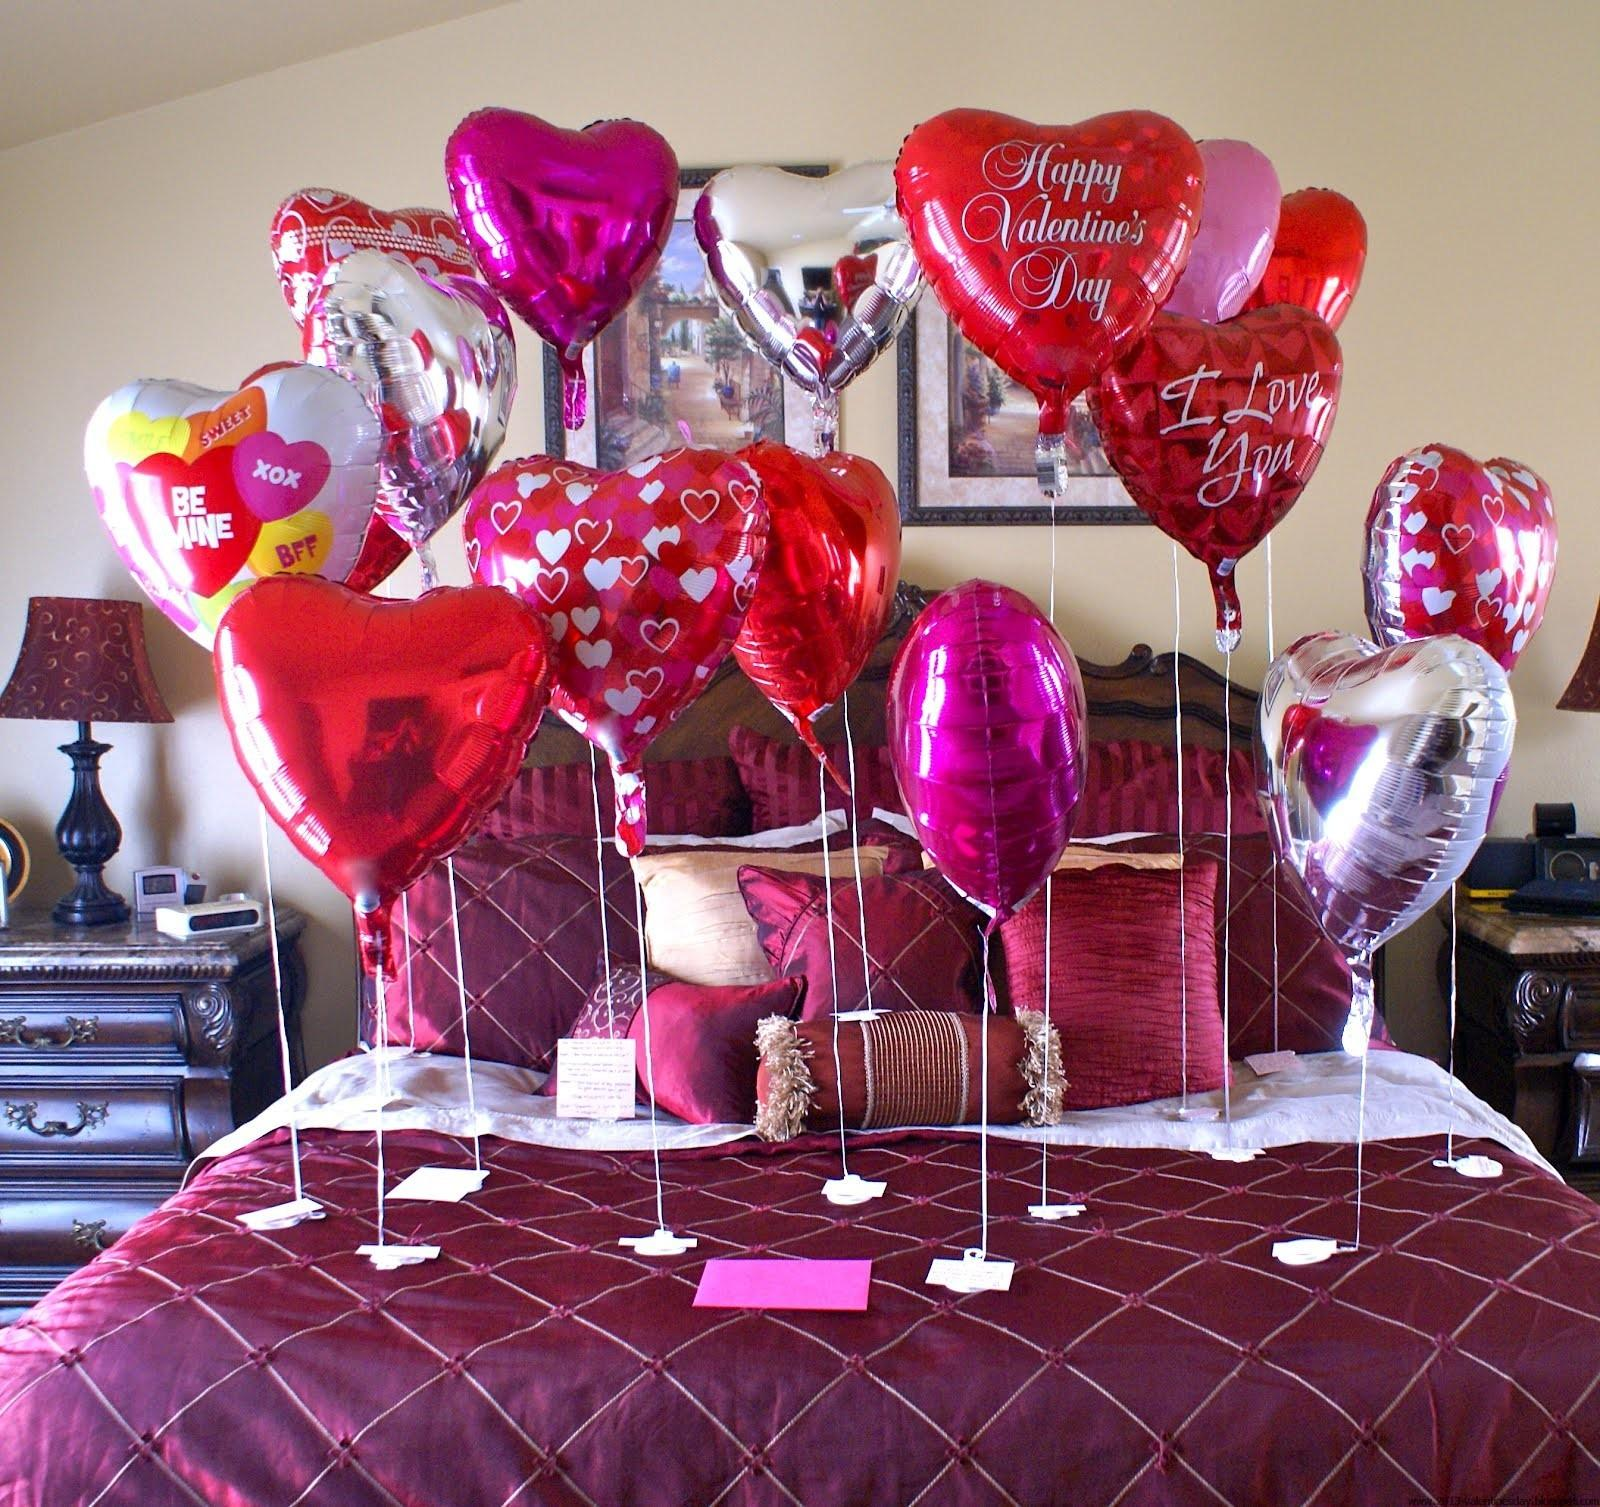 Valentine Day Bed Room Decoration Ideas 2016